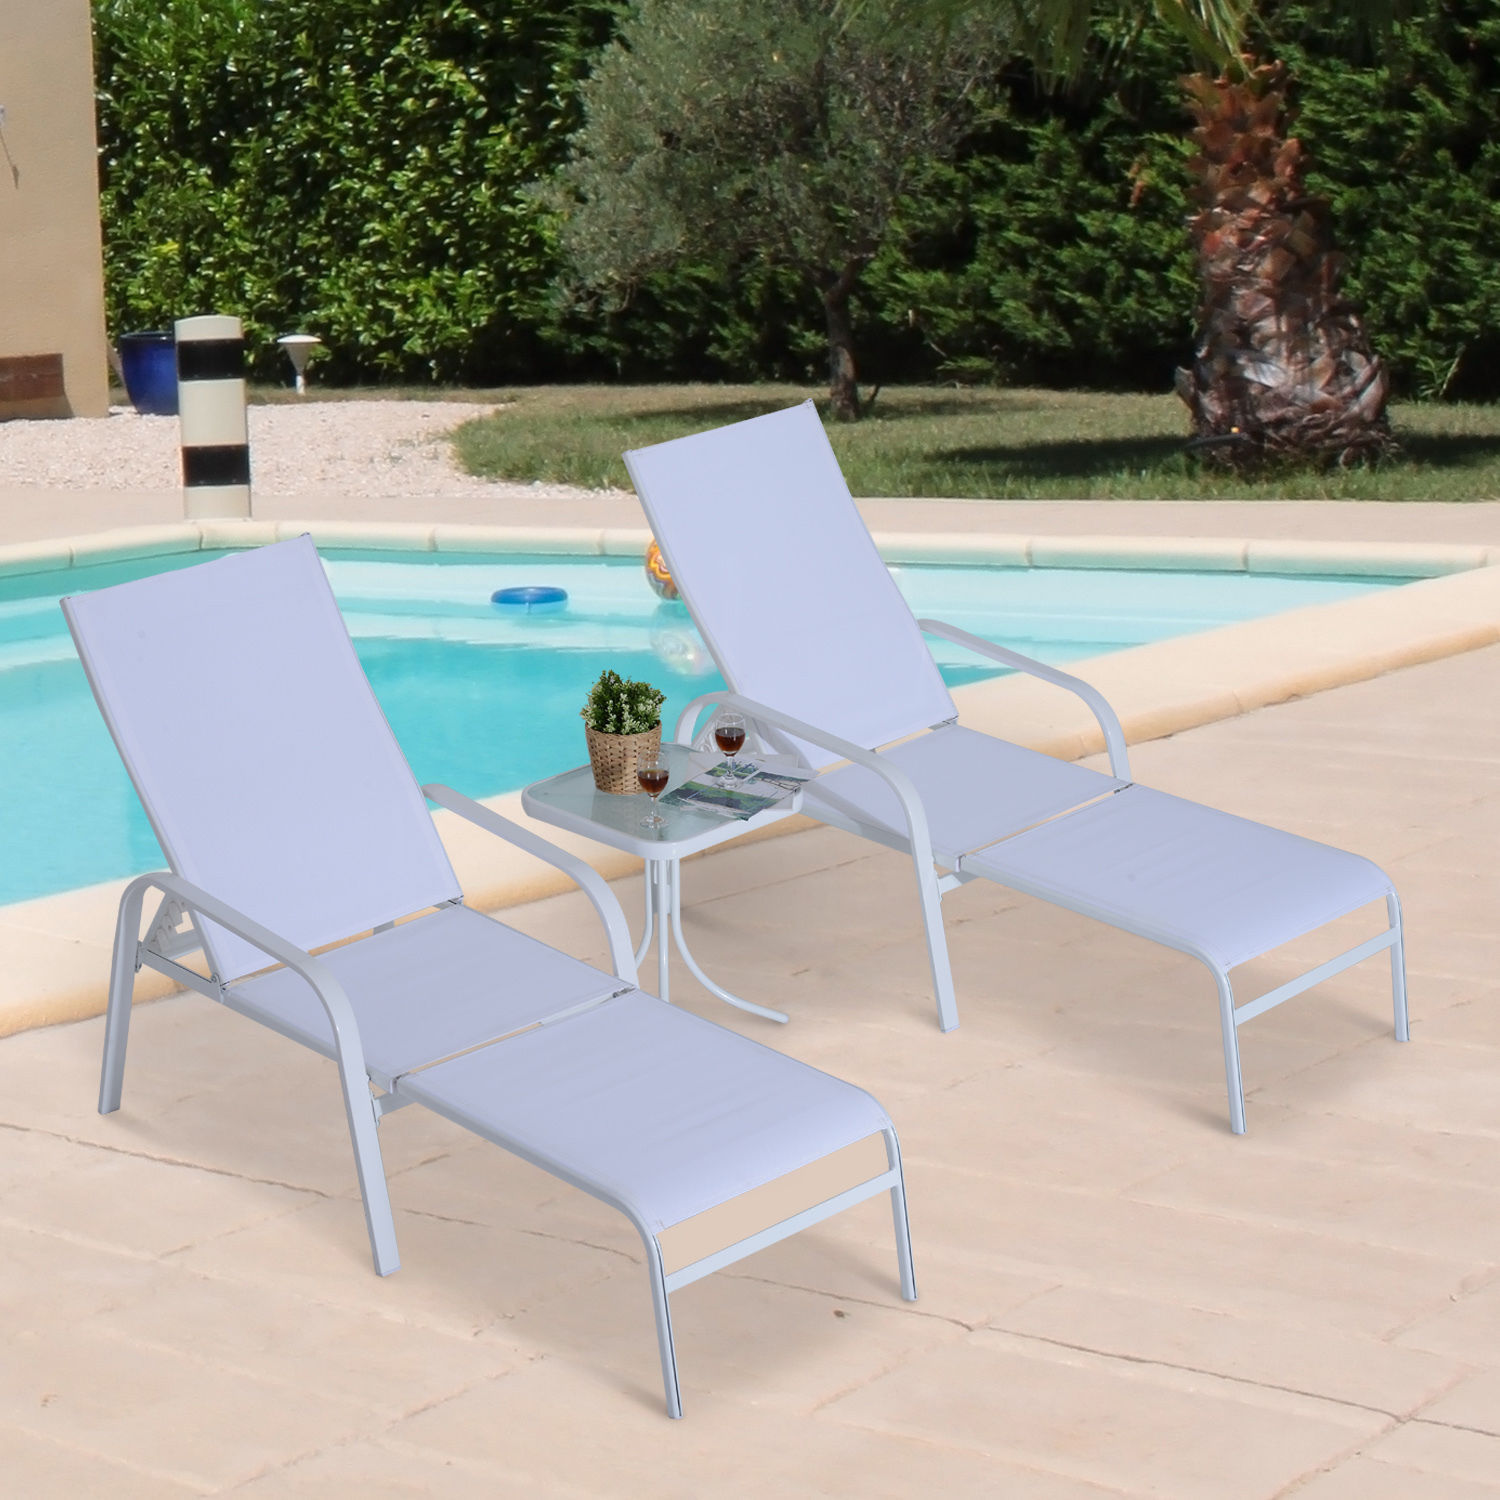 Swell Details About 5Pc Patio Garden Furniture Set Adjustable Sun Chaise Lounge Chair Table Footr Creativecarmelina Interior Chair Design Creativecarmelinacom